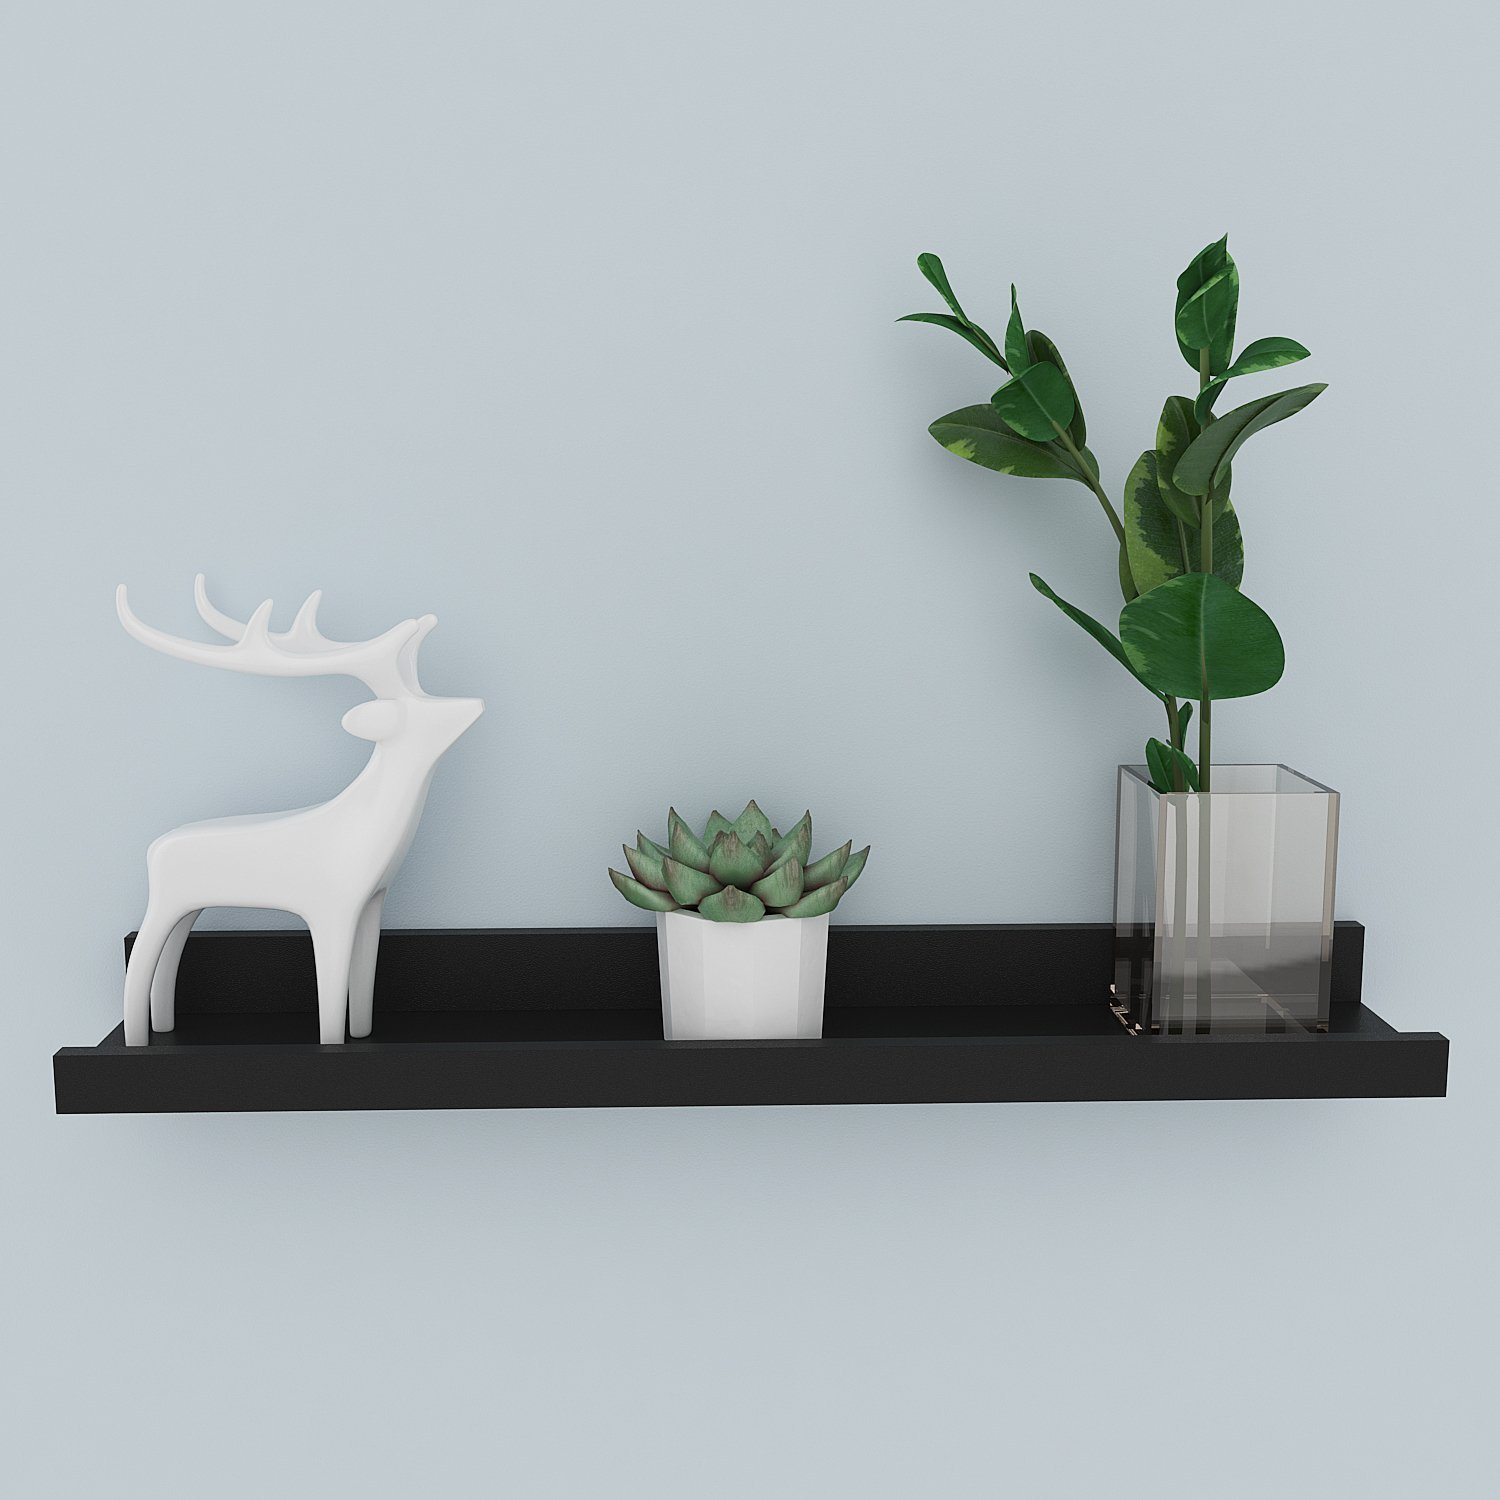 Leoneva Floating Picture Display Ledge Wall Mount Shelf Storage Easy Install 23.6inch